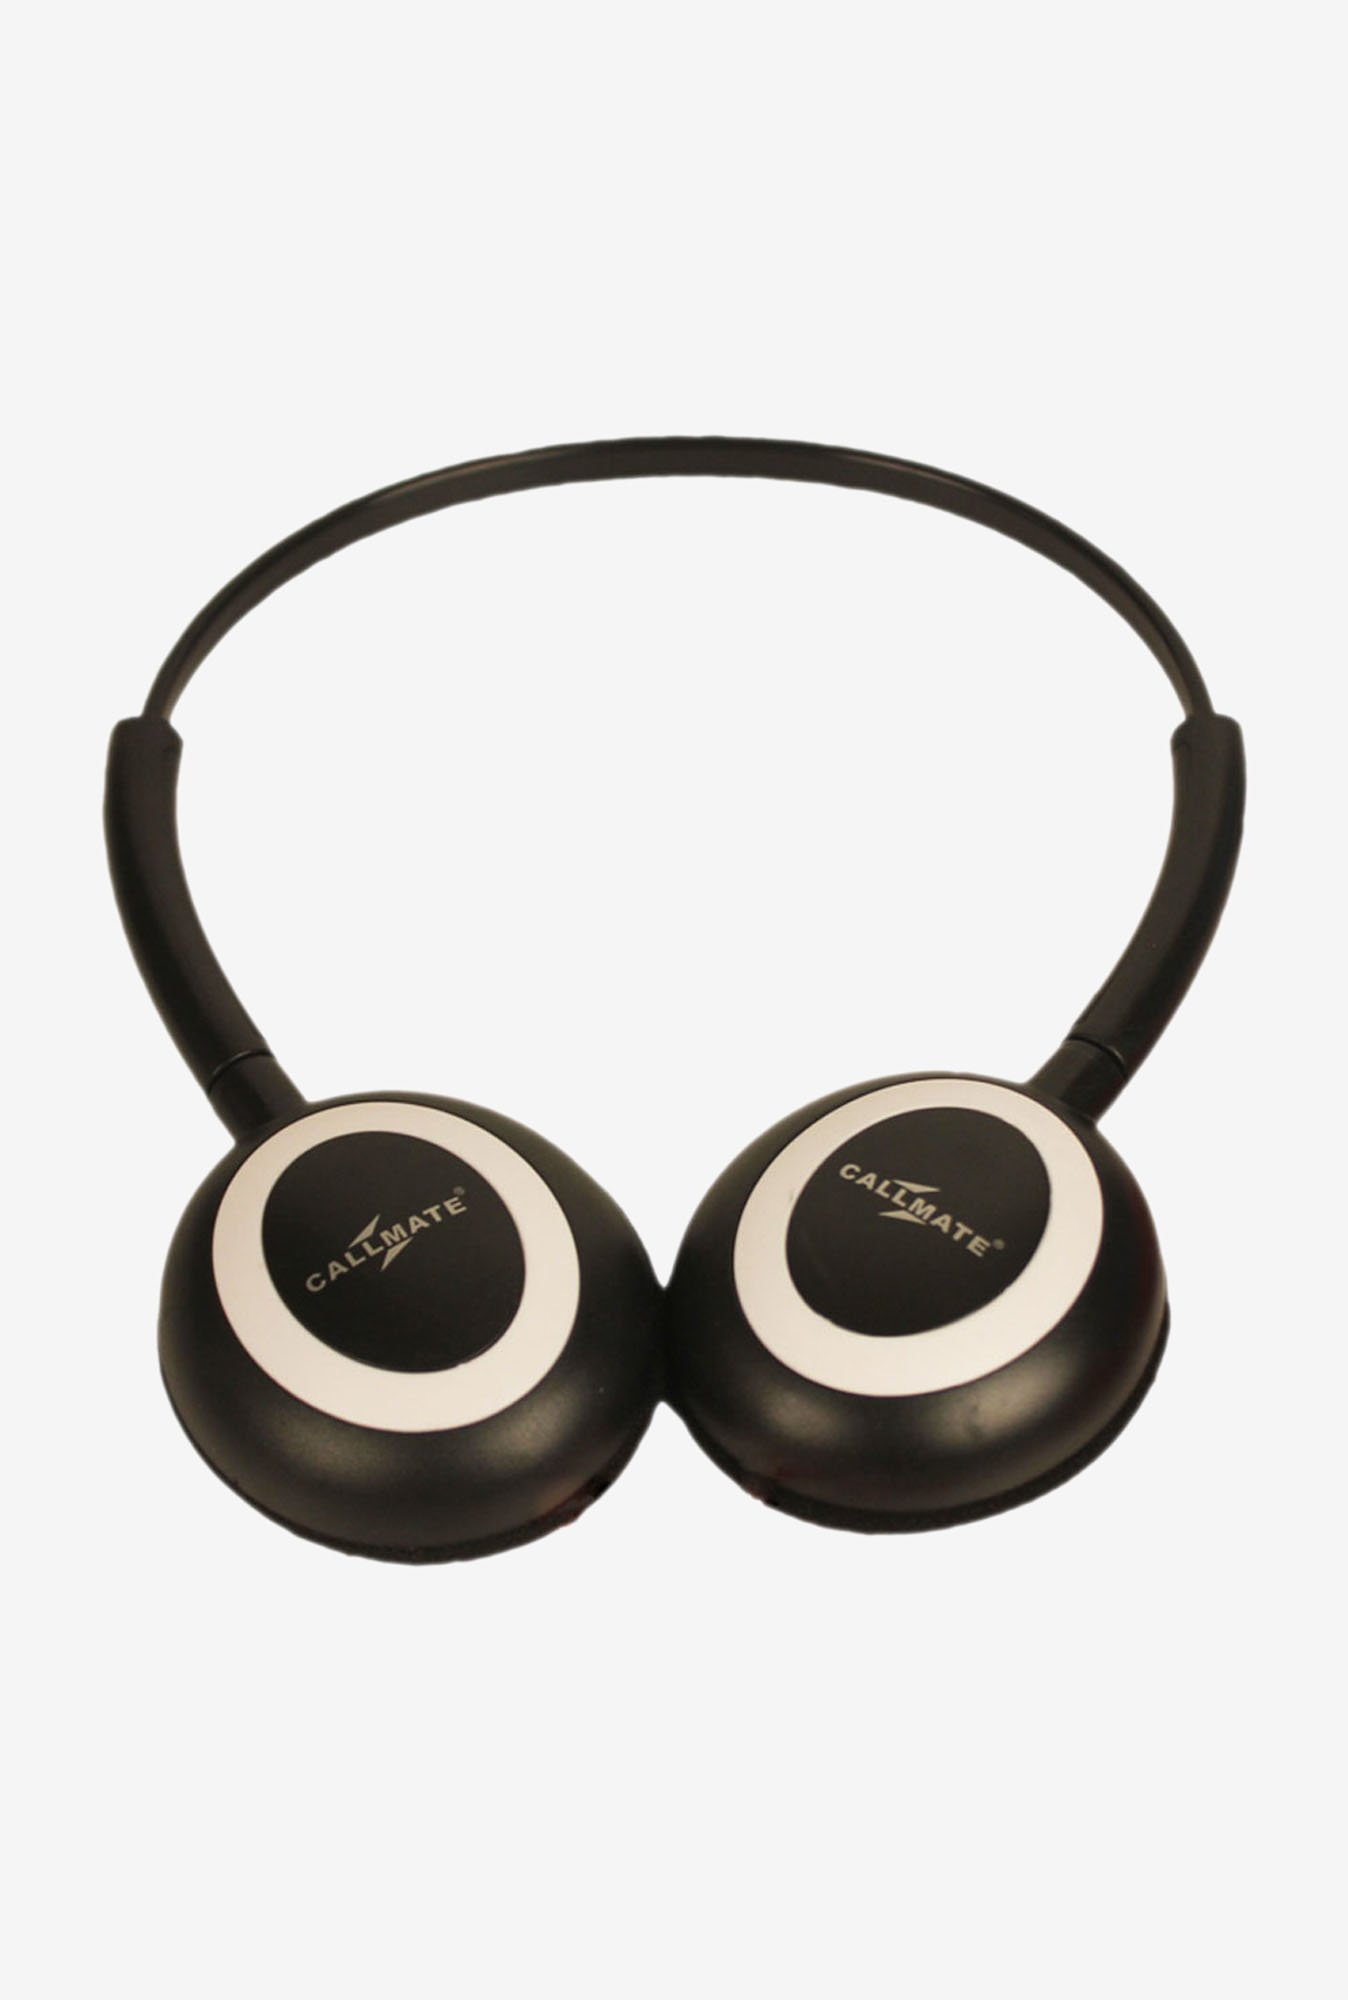 Callmate HPOMBK Over-Ear Head Phone Black